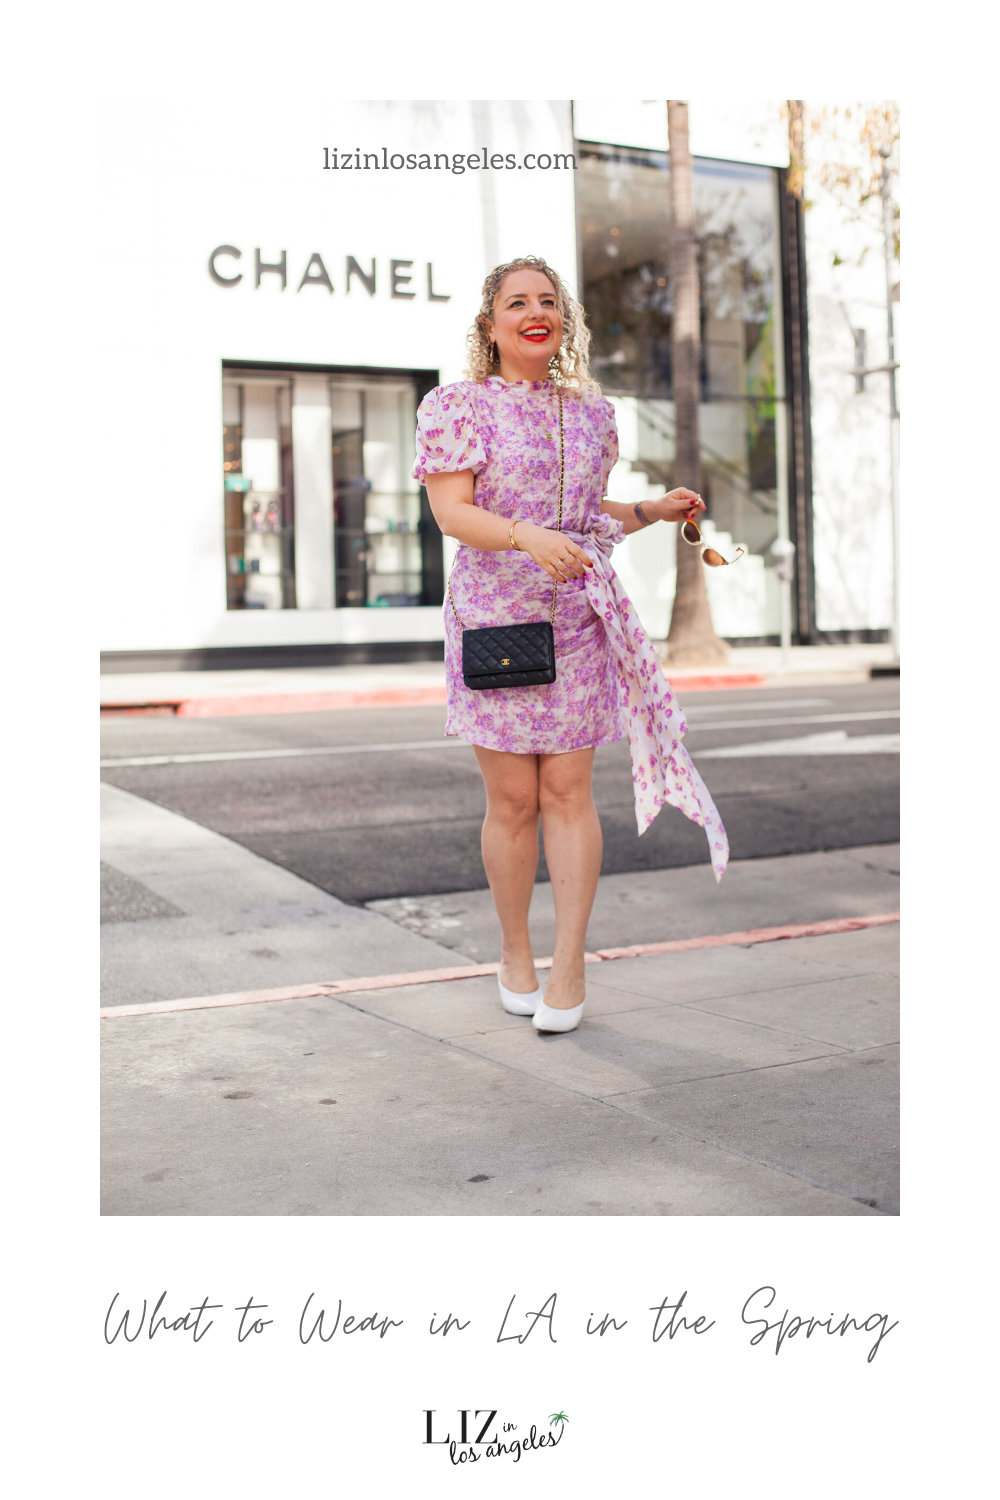 What to Wear in LA in the Spring, a blog post by Liz in Los Angeles, Los Angeles Lifestyle Blogger: an image of a woman in a floral dress